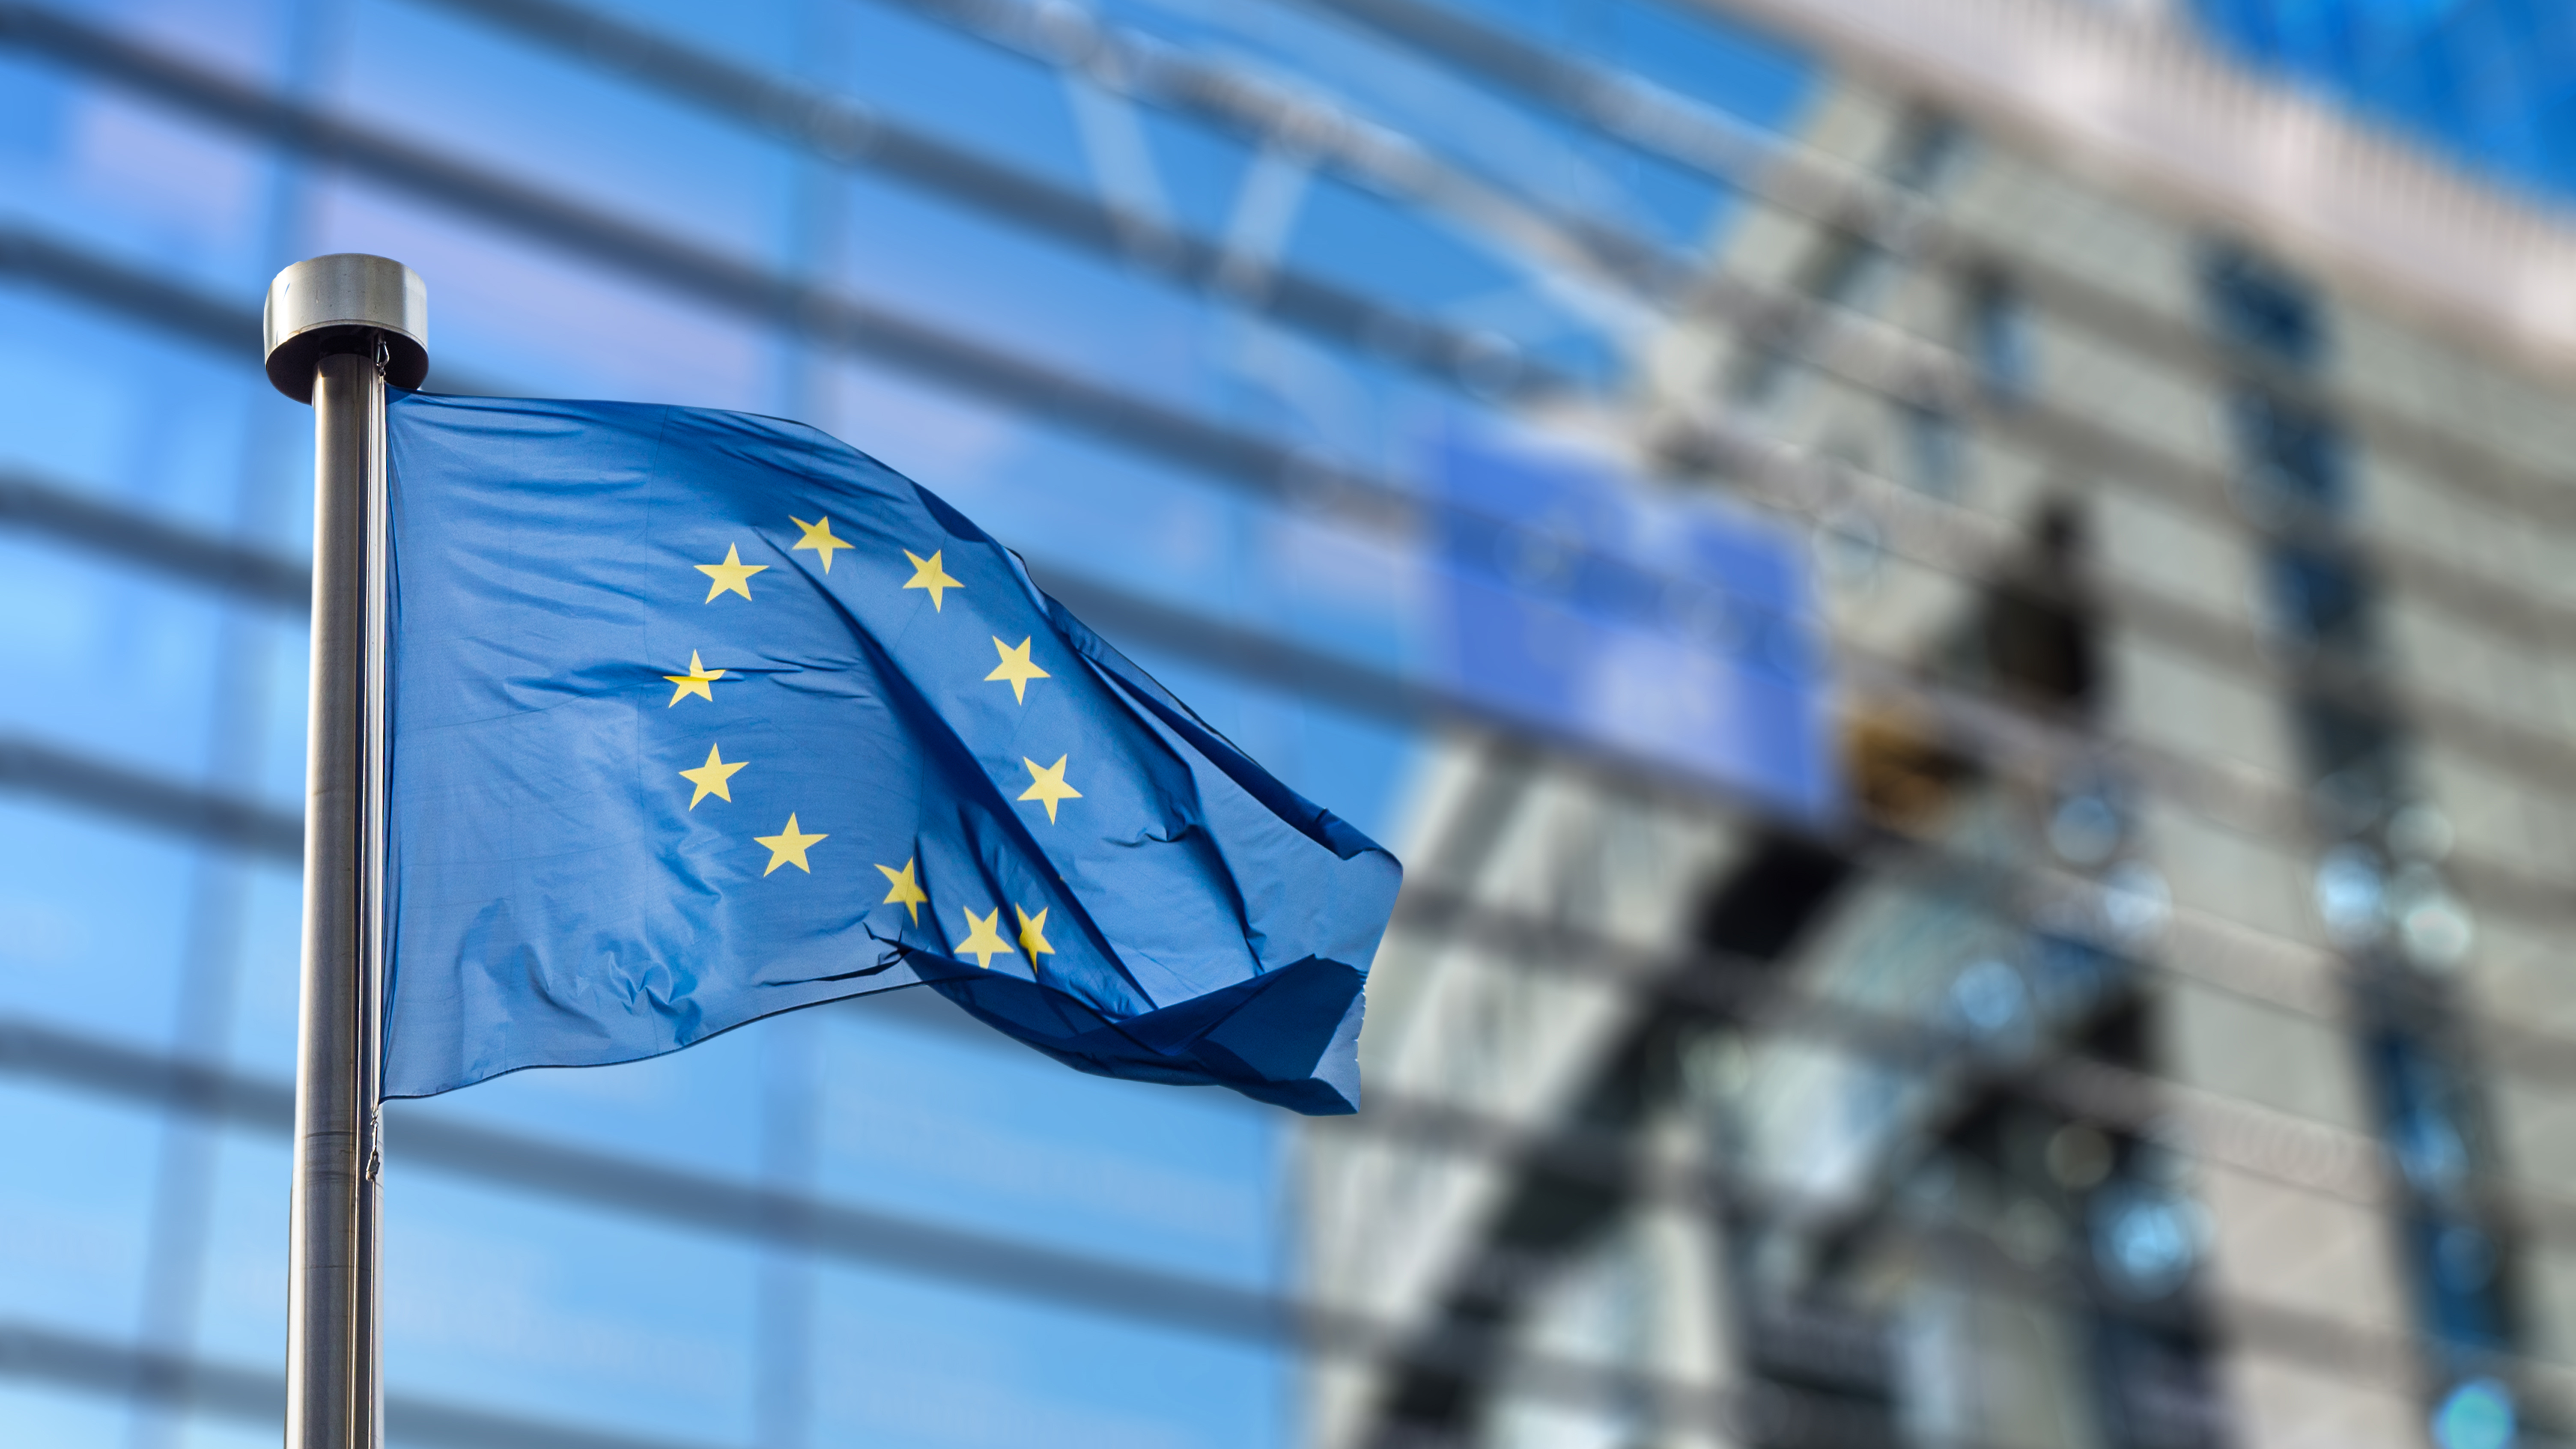 Audit preview: Resilience of the EU institutions during the COVID-19 crisis